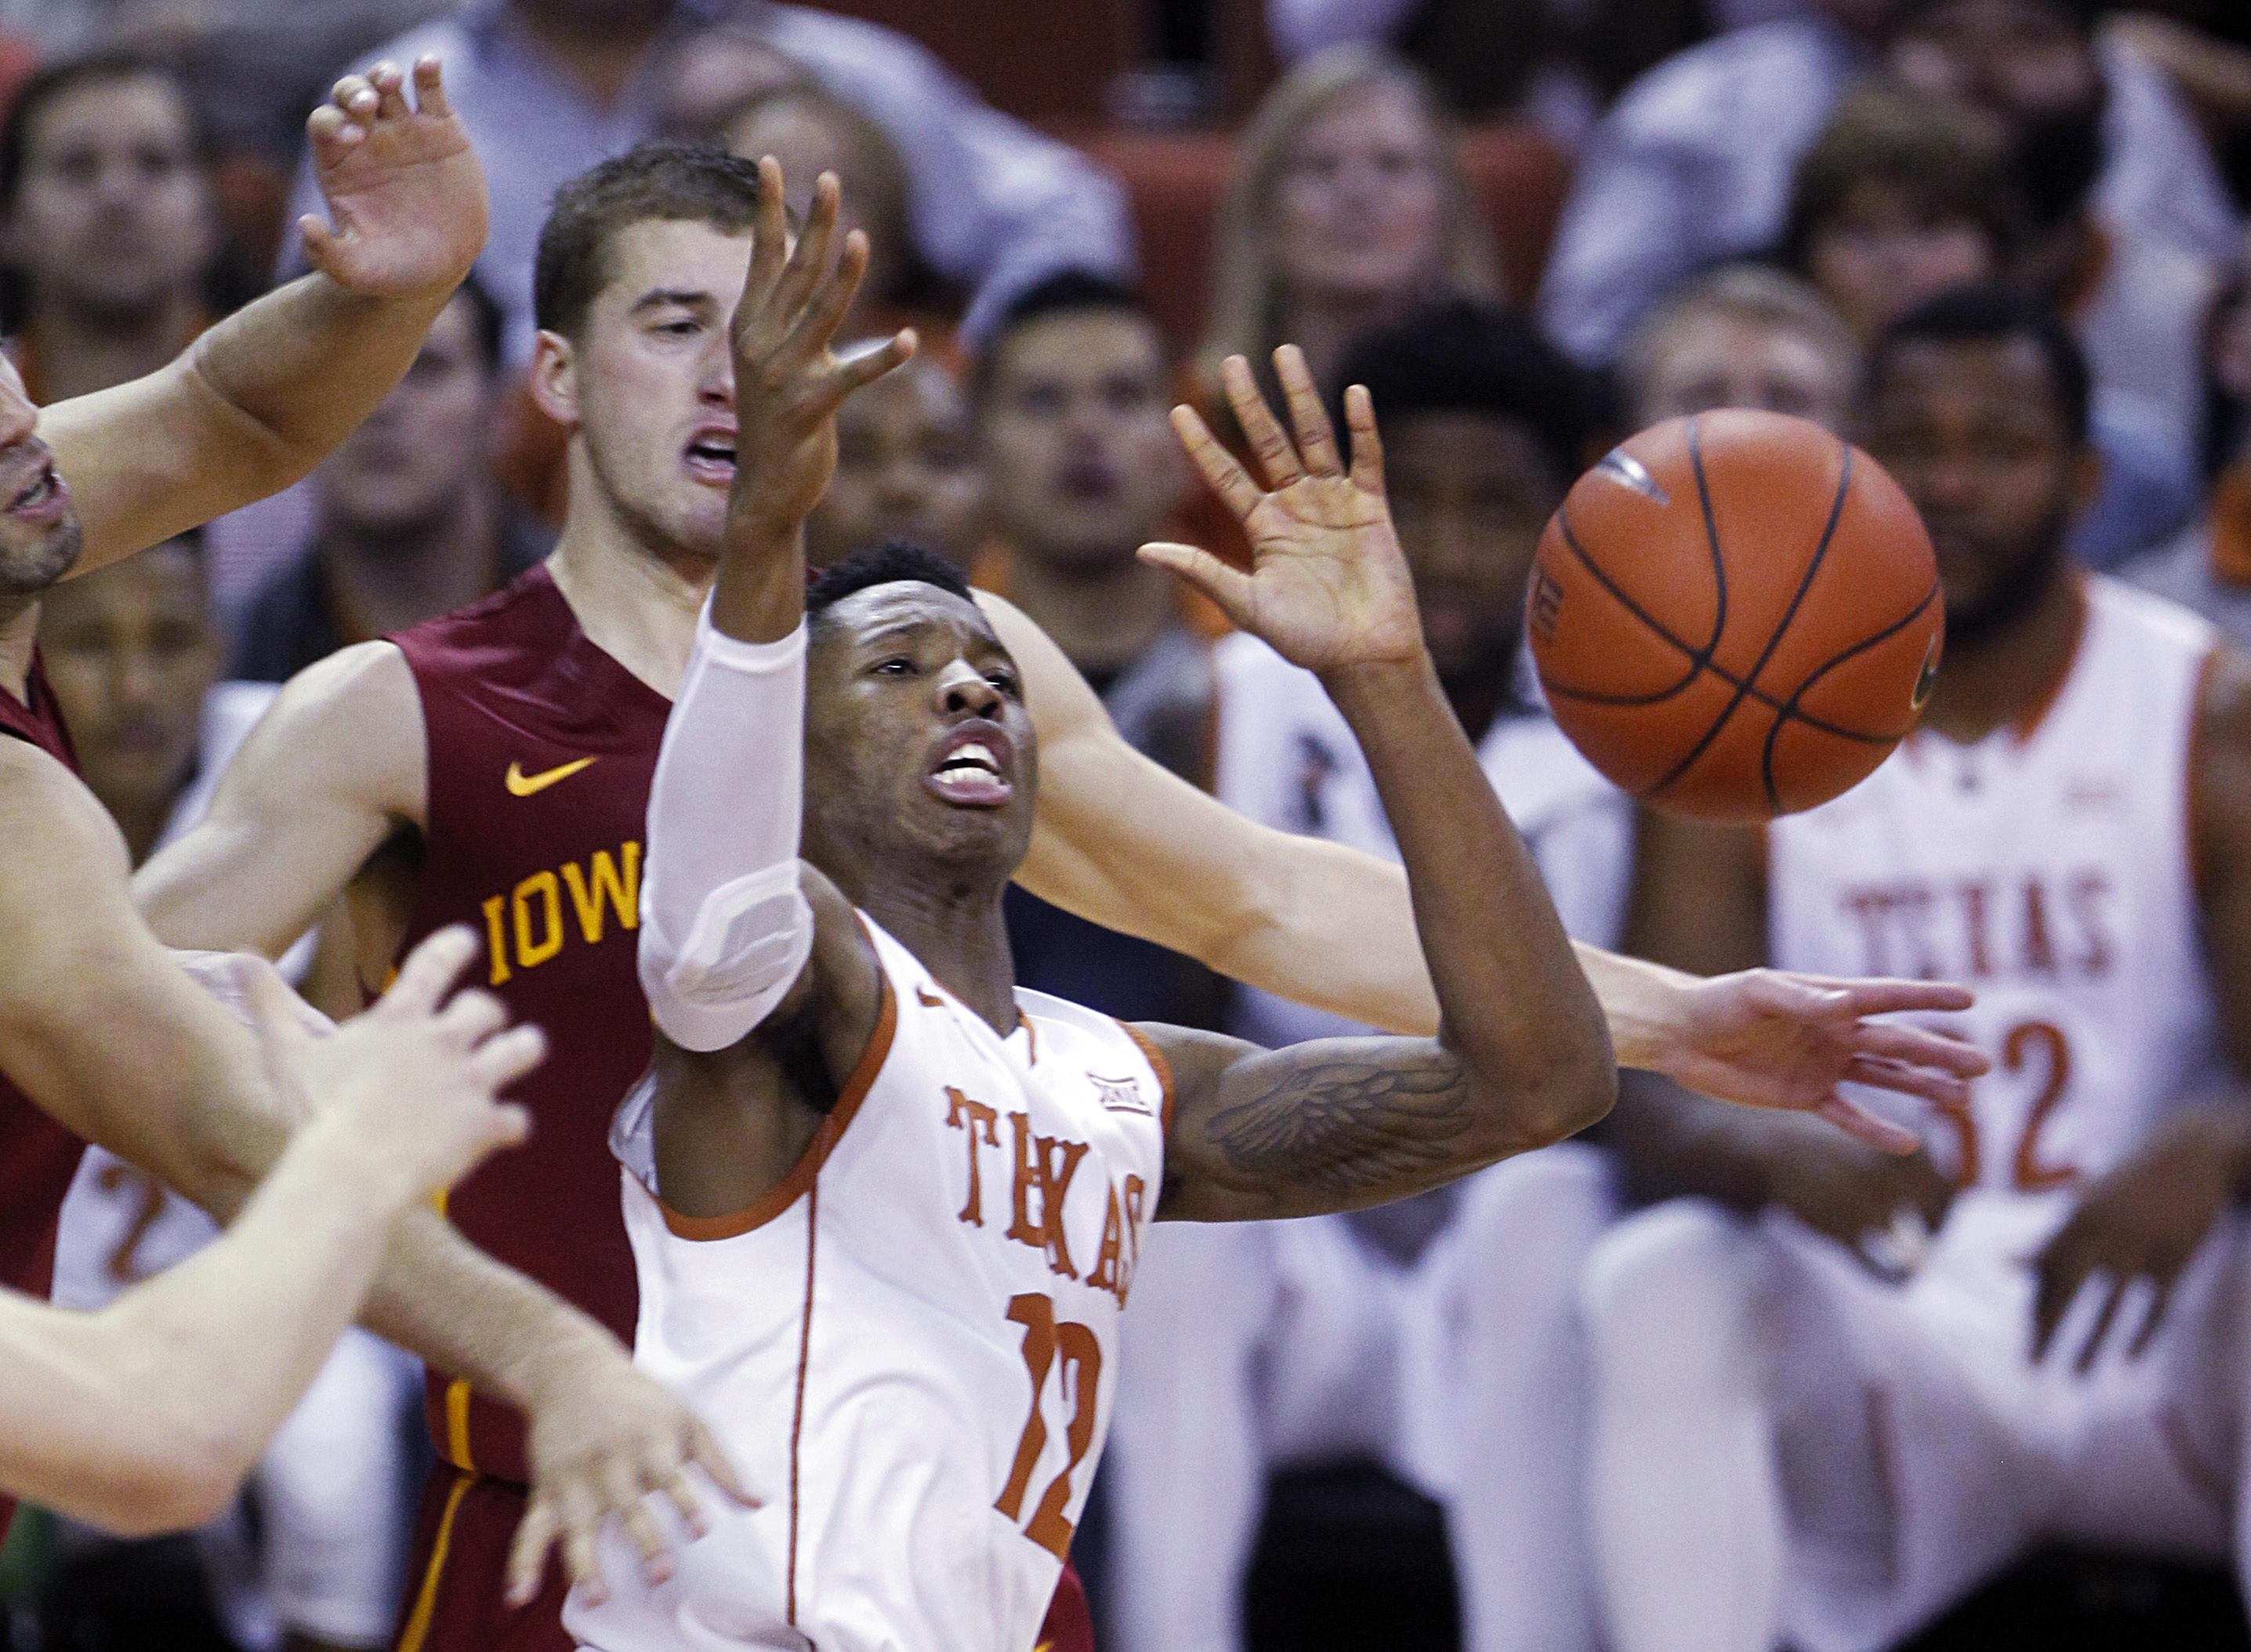 Texas guard Kerwin Roach, Jr. looks to control the loose ball during the second half of an NCAA college basketball game against Iowa State, Tuesday, Jan. 12, 2016, in Austin, Texas. Texas won 94-91. (AP Photo/Michael Thomas)